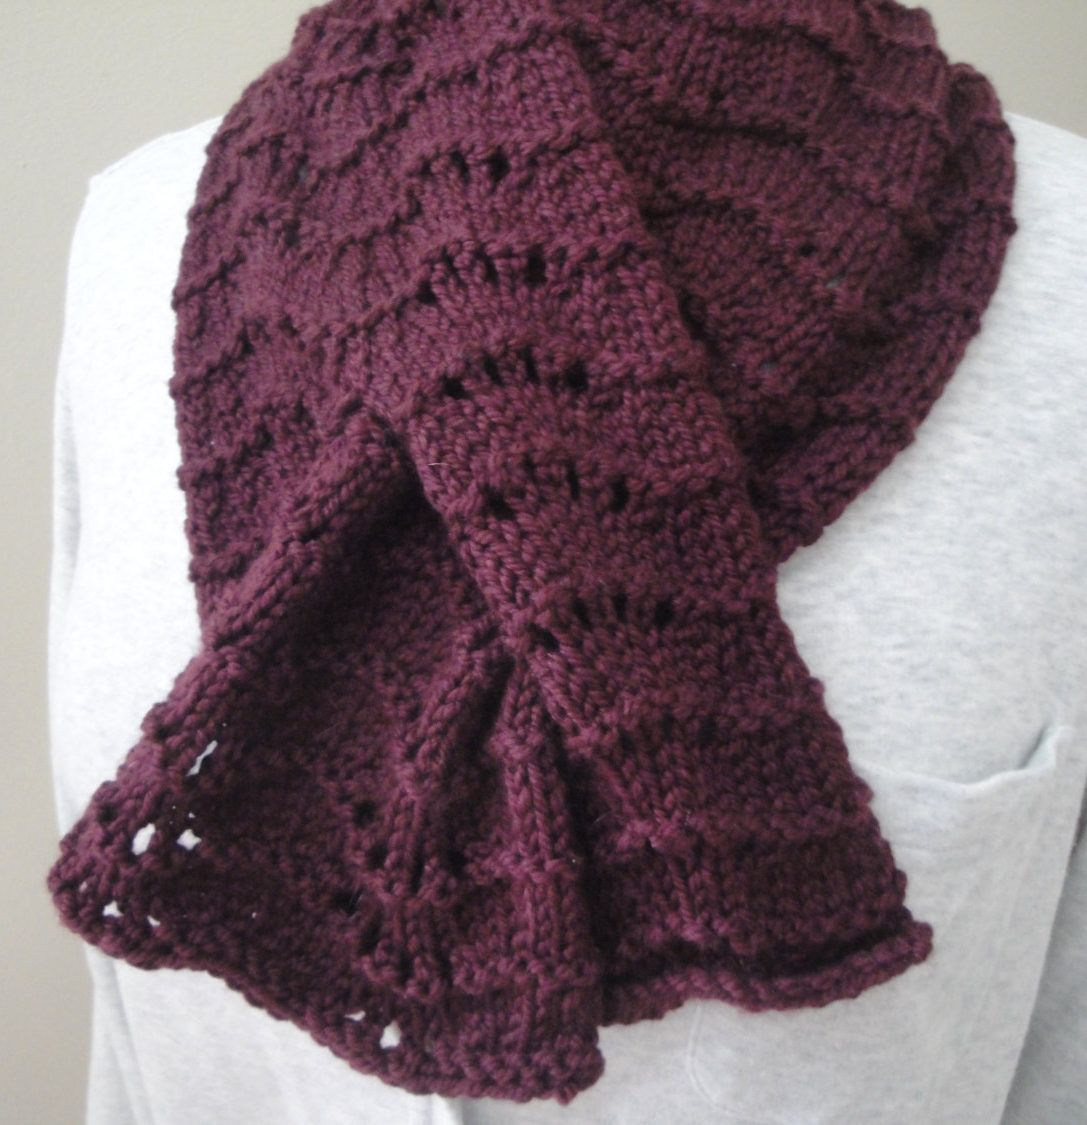 Self-Fastening Scarves and Shawls Knitting Patterns | Neck warmer ...